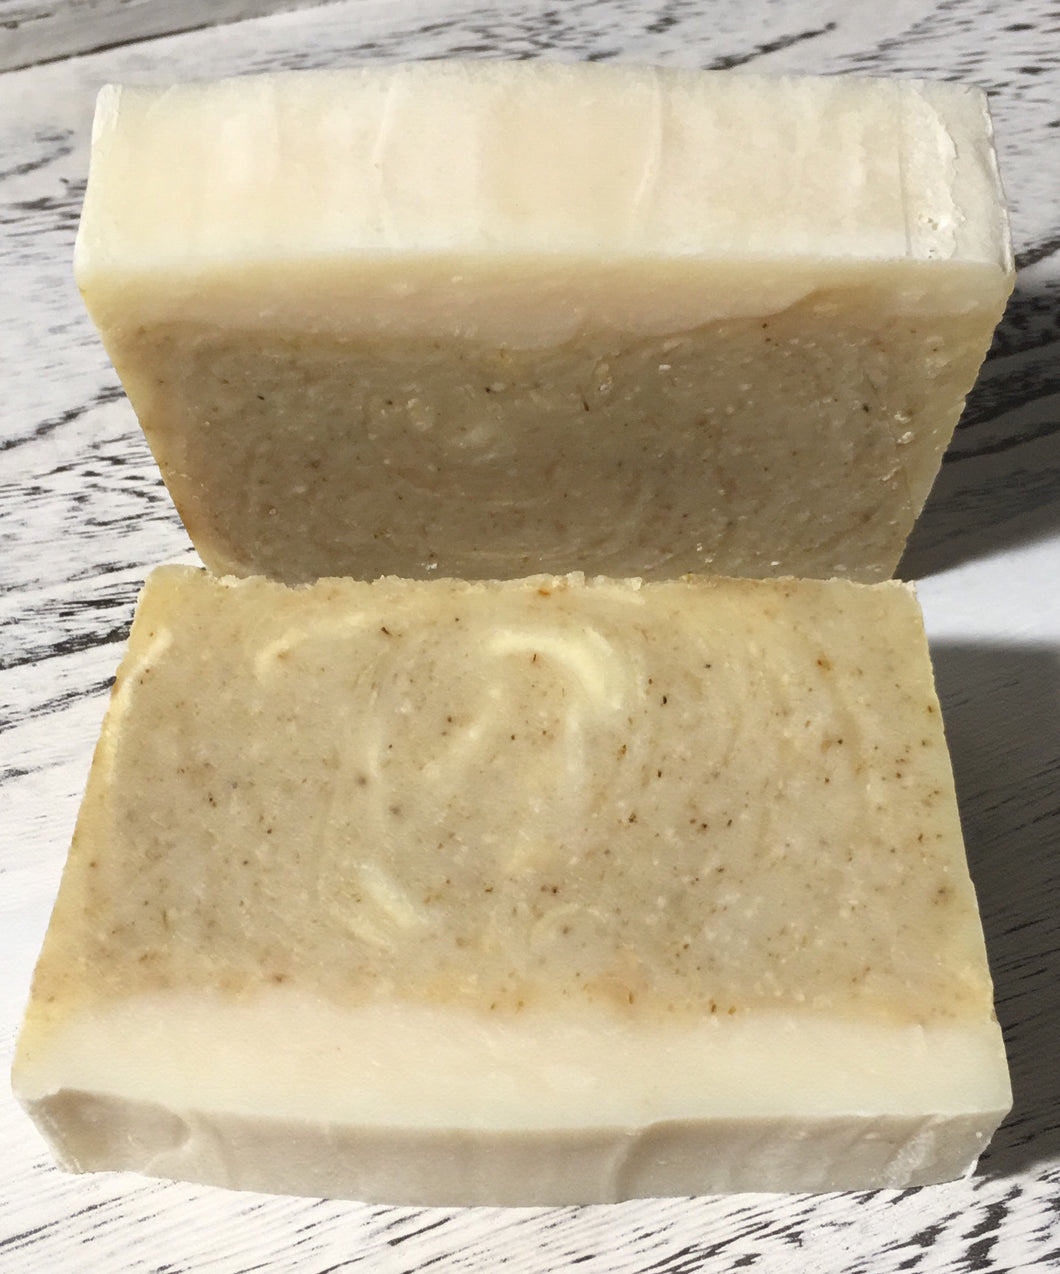 This Lemon Chamomile Vegan Handcrafted Soap is so soothing and especially designed for sensitive skin because of the colloidal oatmeal that it contains. The soft scent of lemon essential oil gives it a bright ,sweet & refreshing scent, while coconut, olive & sweet almond oils give it that luxurious lather.